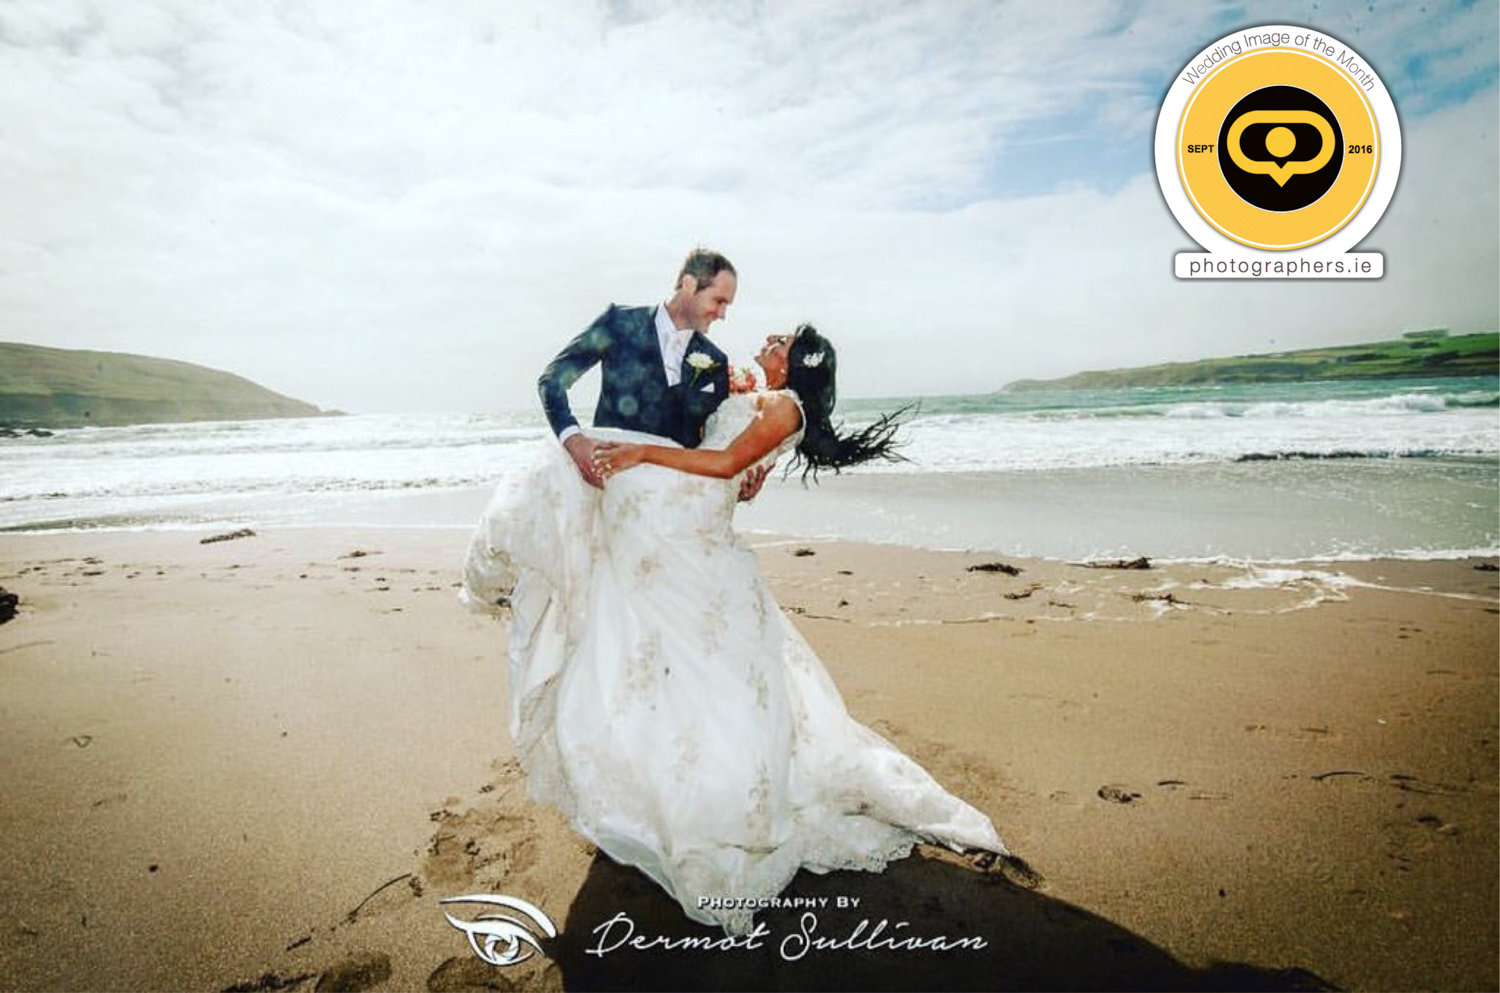 Professional Wedding Photographer in Cork & Kerry, Dermot Sullivan, Cork Wedding Photographer, Wedding Photography Cork, Award Winning Wedding Photography, West Cork Wedding Photography, Cork Wedding Photos, Clonakilty Wedding Photographer, Best Prices, Packages, Pictures, Best Wedding Photos,